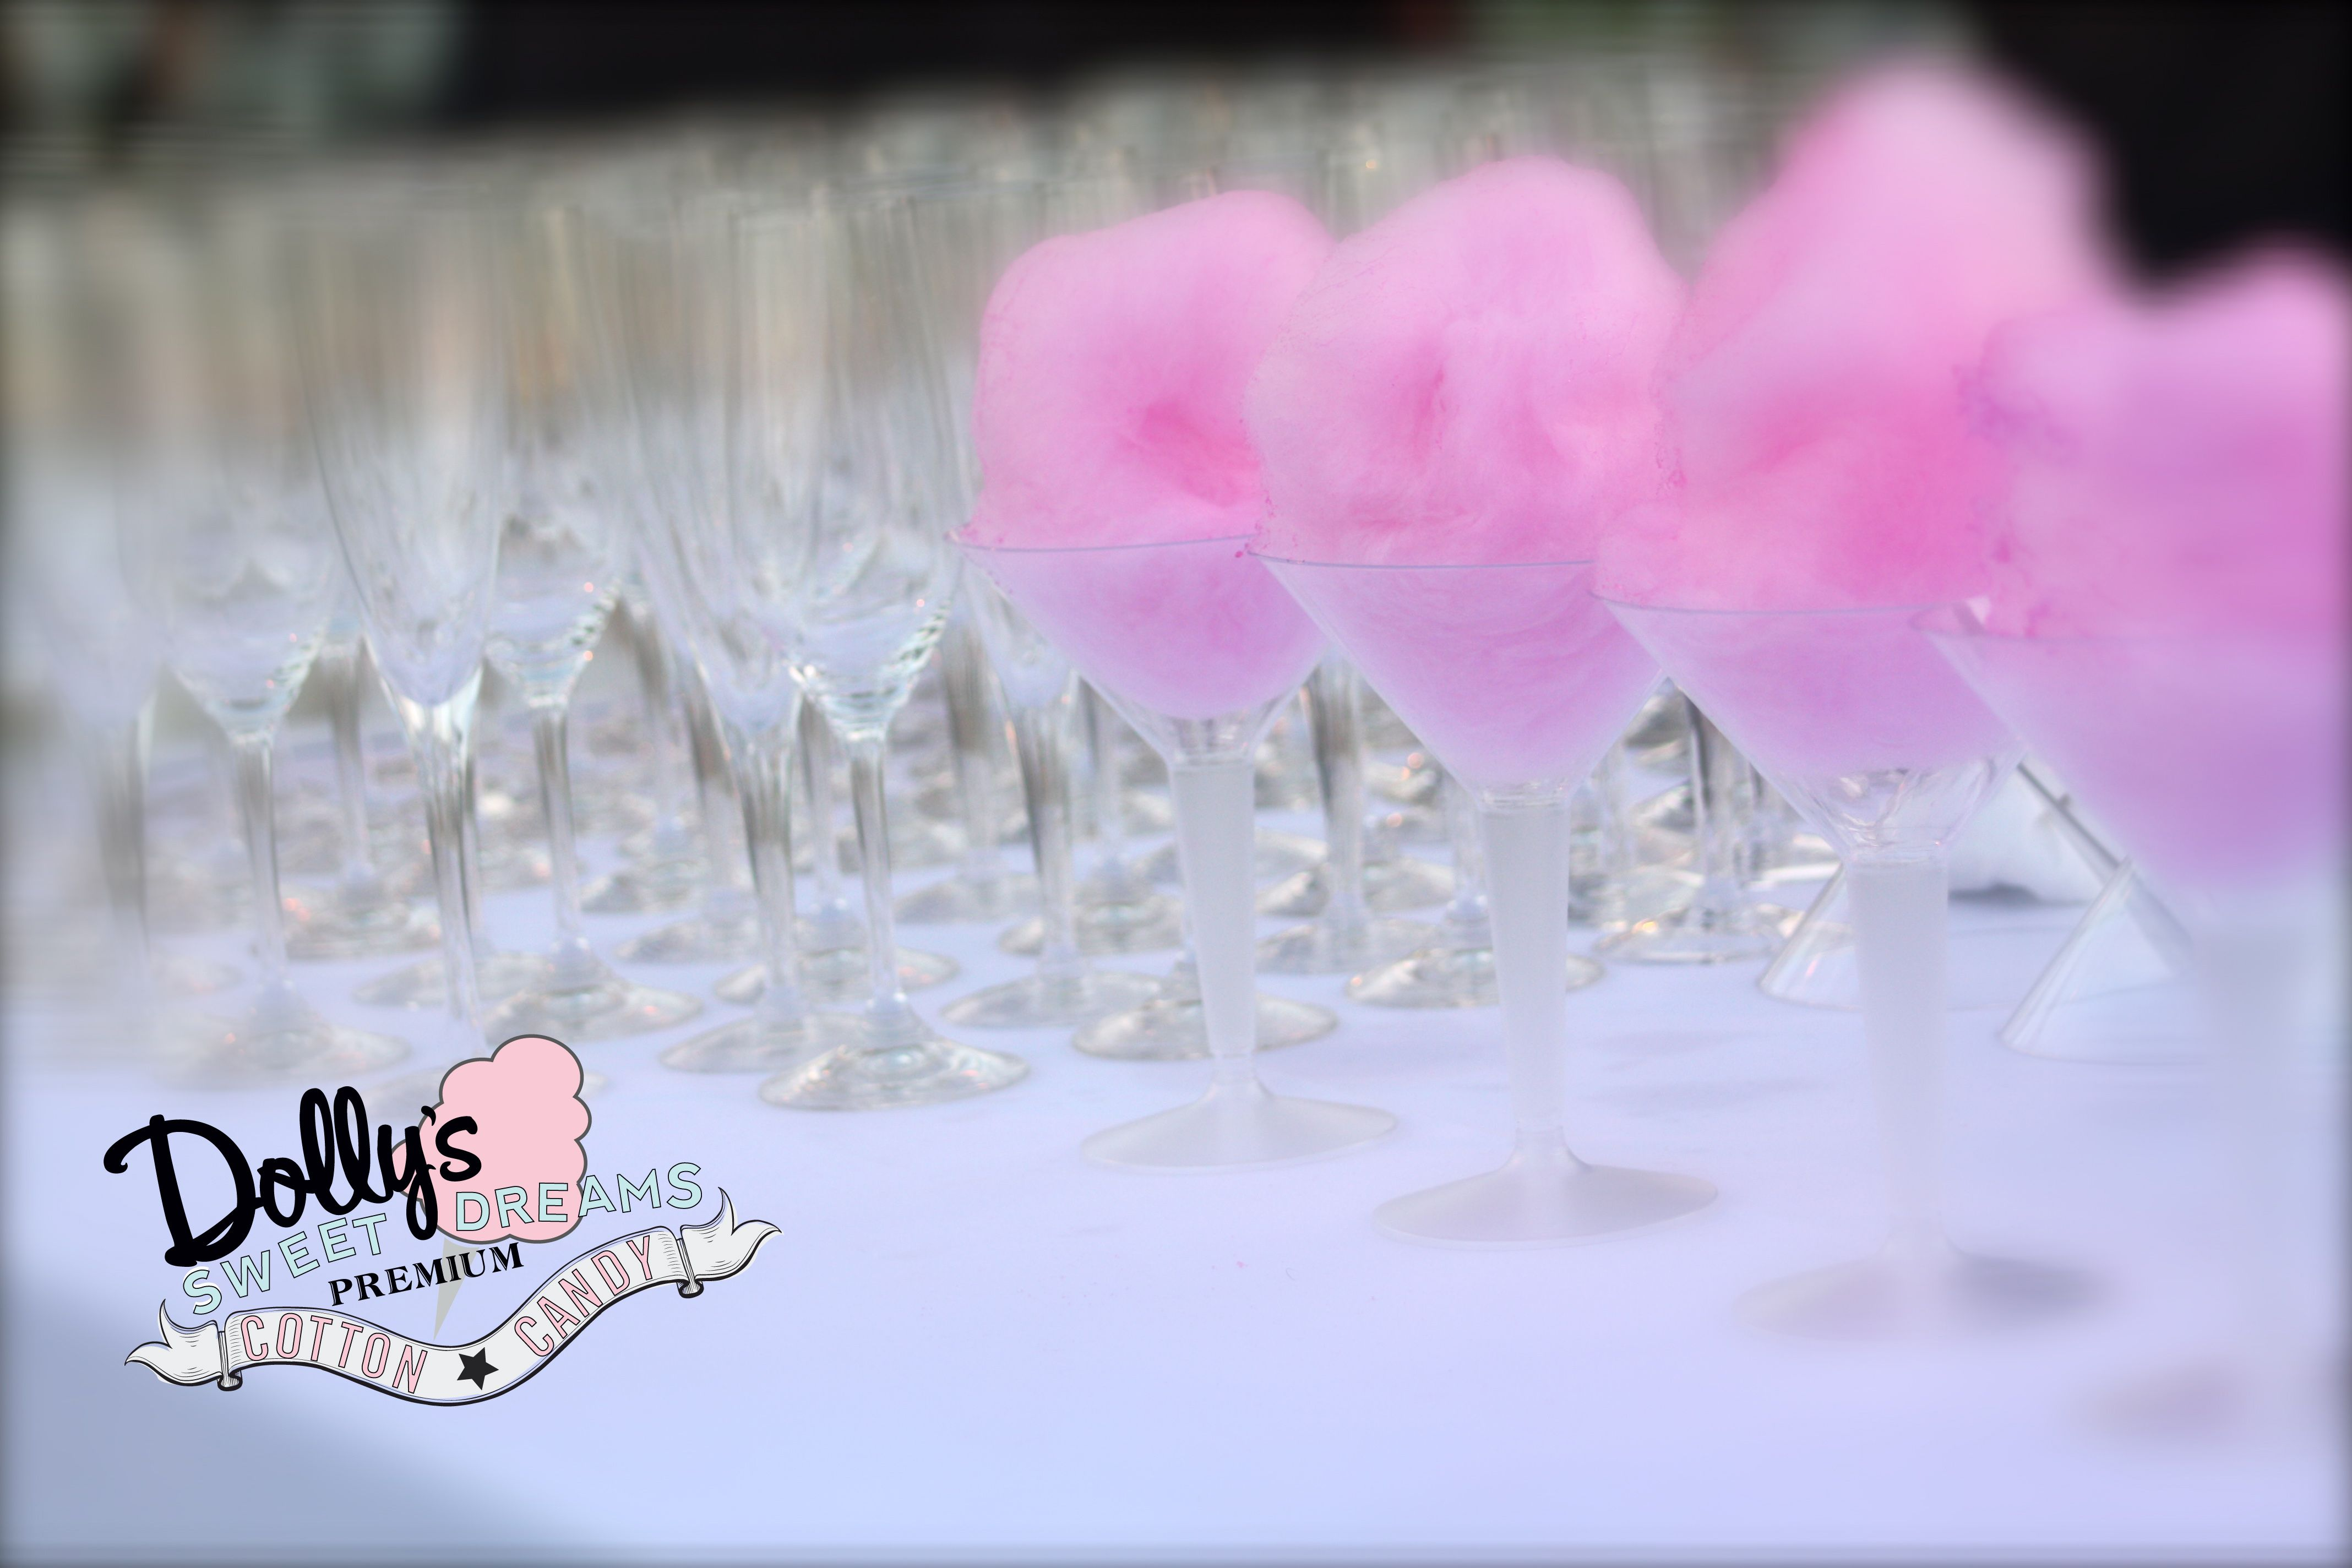 Signature drinks add a personal touch to any event. Pick a drink that stars your favorite liquor & matches your color scheme. Looking to add that sweet touch? Dolly's Cotton Candy Martini's can be made in 7 colors & provide unique and dazzling entertainment ♥  www.facebook.com/dollyscottoncandy  www.dollyscottoncandy.com